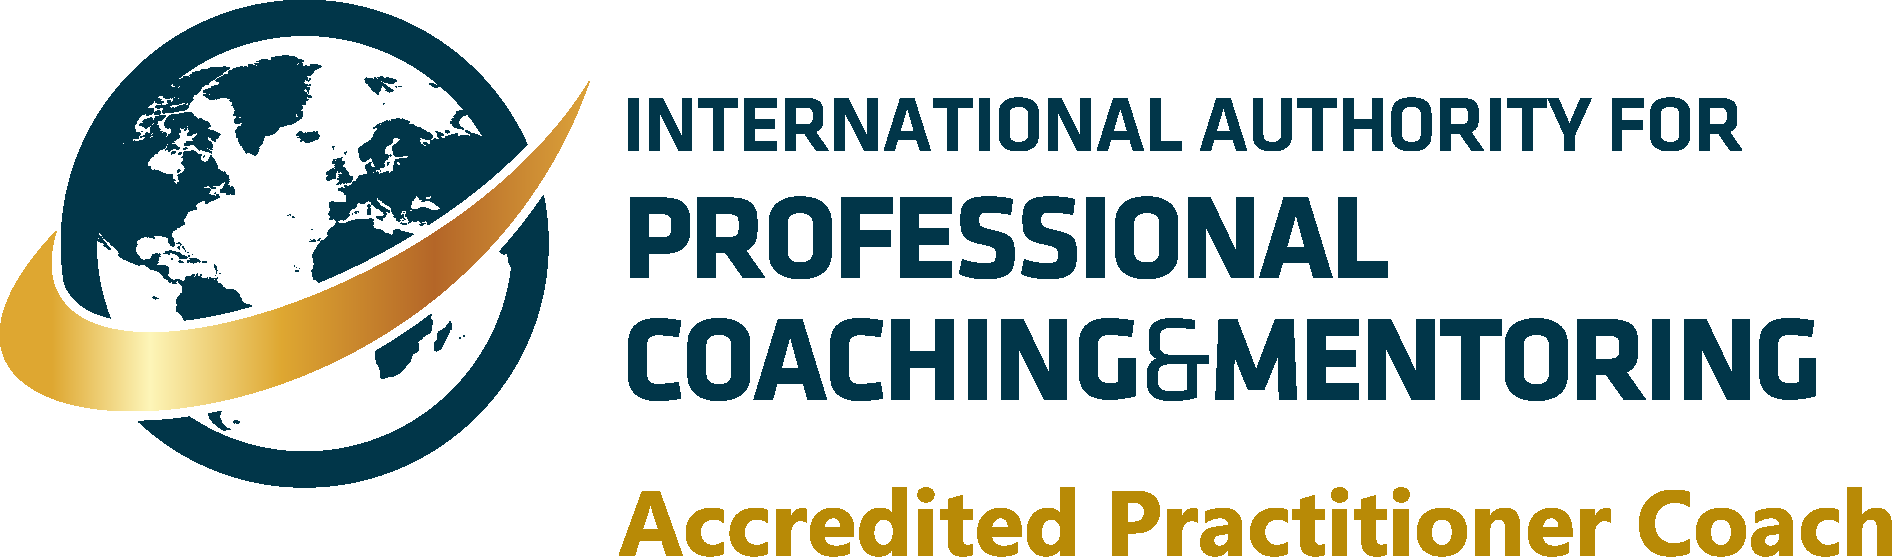 International Authority for Professional Coaching and Mentoring